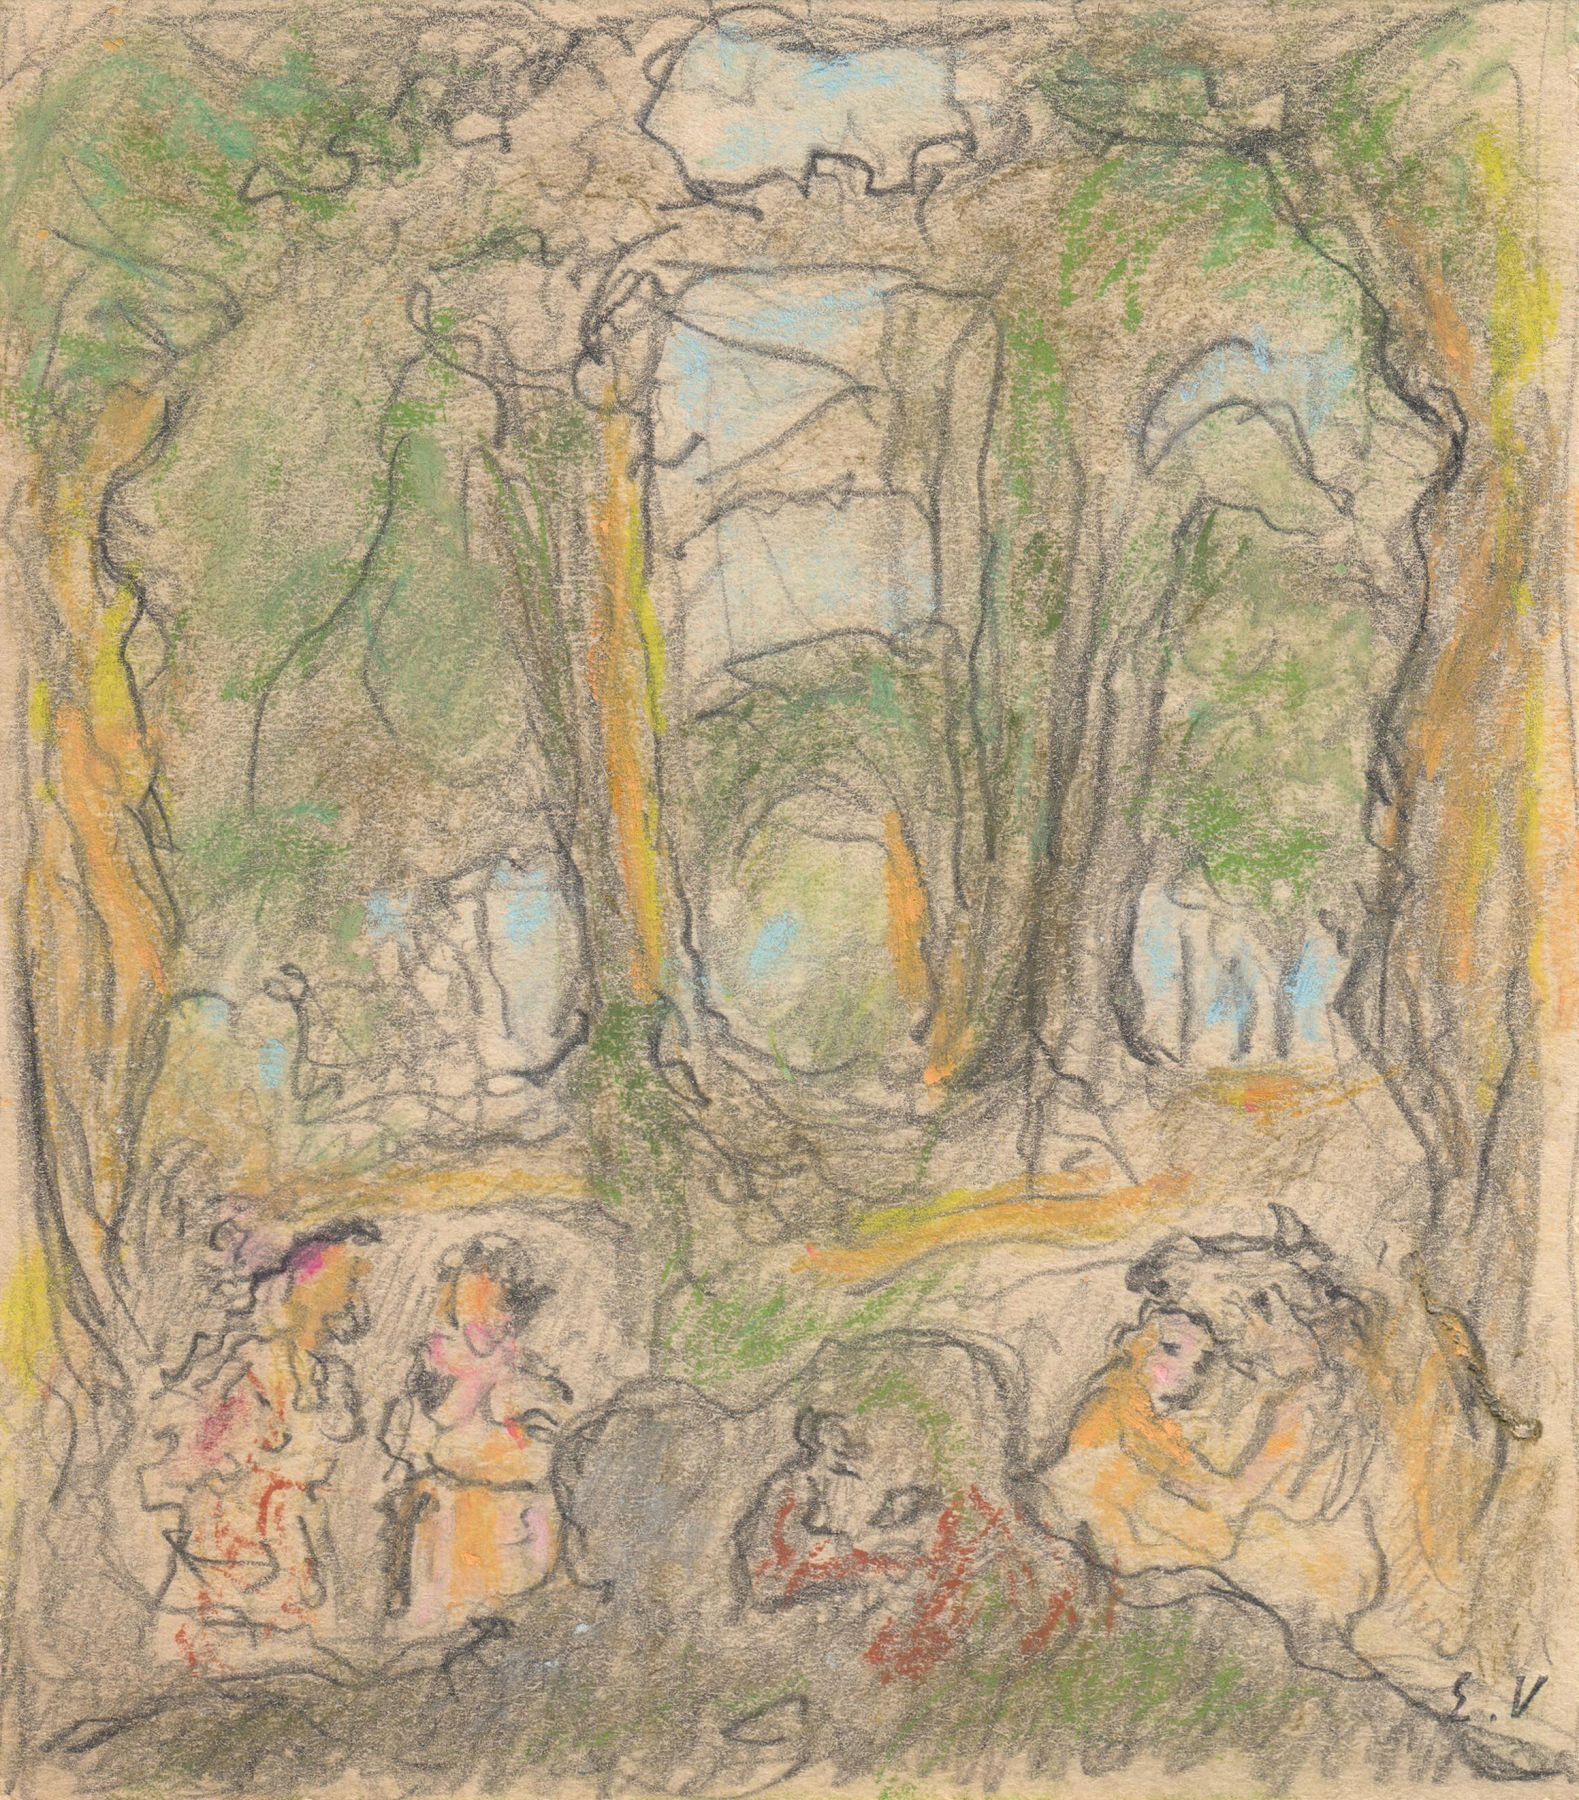 Edouard Vuillard, Study for La Comédie du Palais de Chaillot, 1937,  Pastel and pencil on paper 3 7/8 x 4 3/8 inches